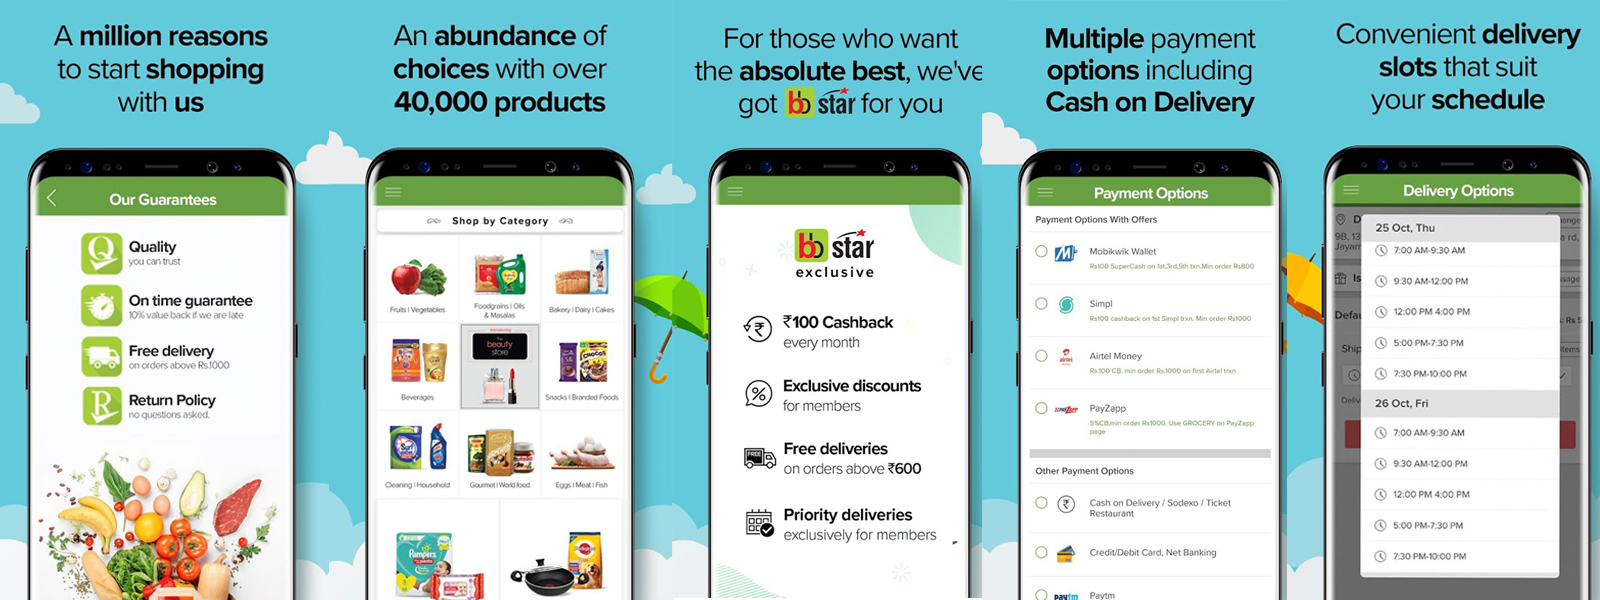 How Much Does it Cost to Develop App like Big Basket